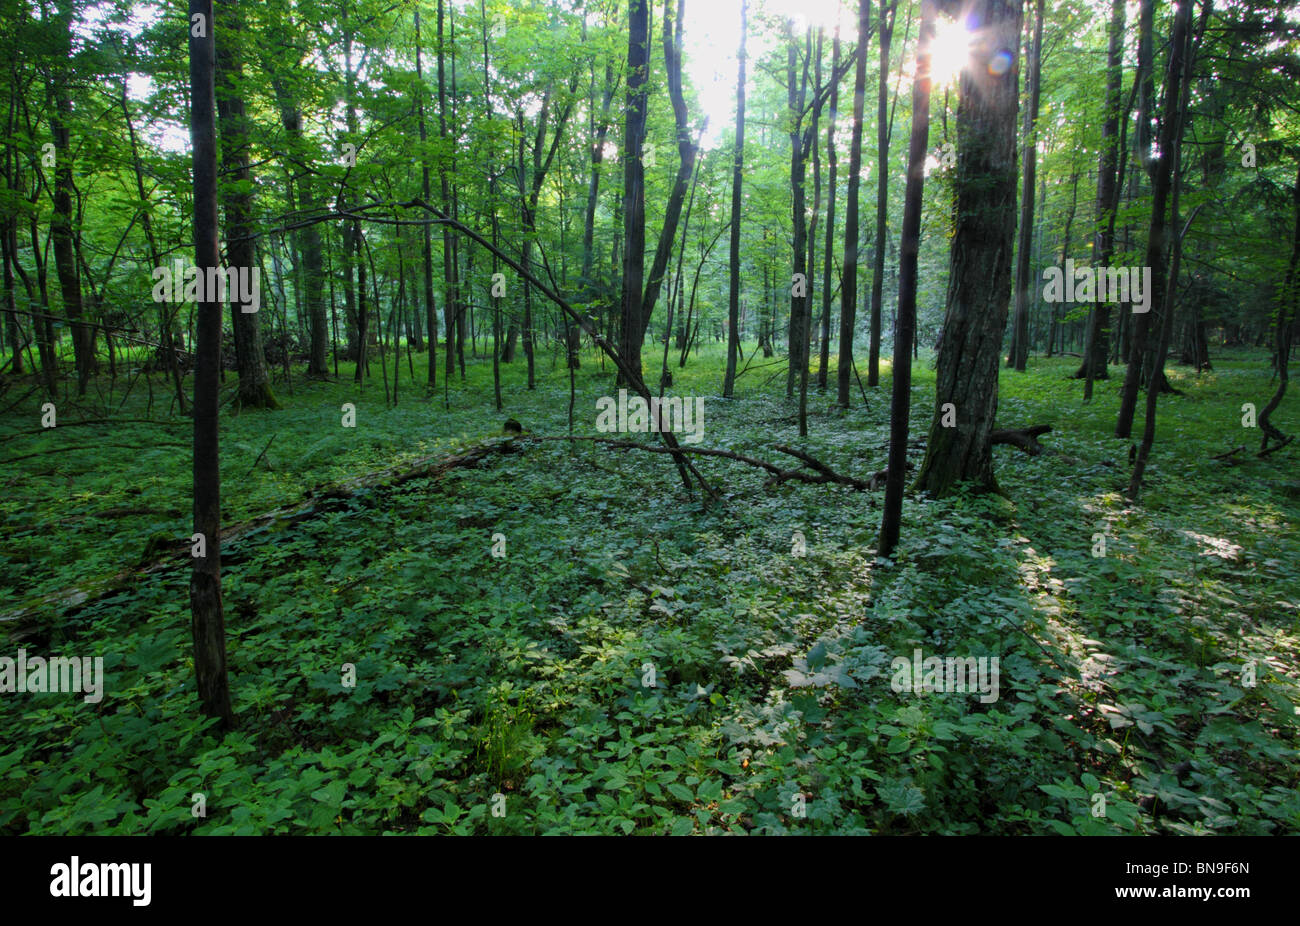 Primeval forest in Bialowieza, Poland - Stock Image